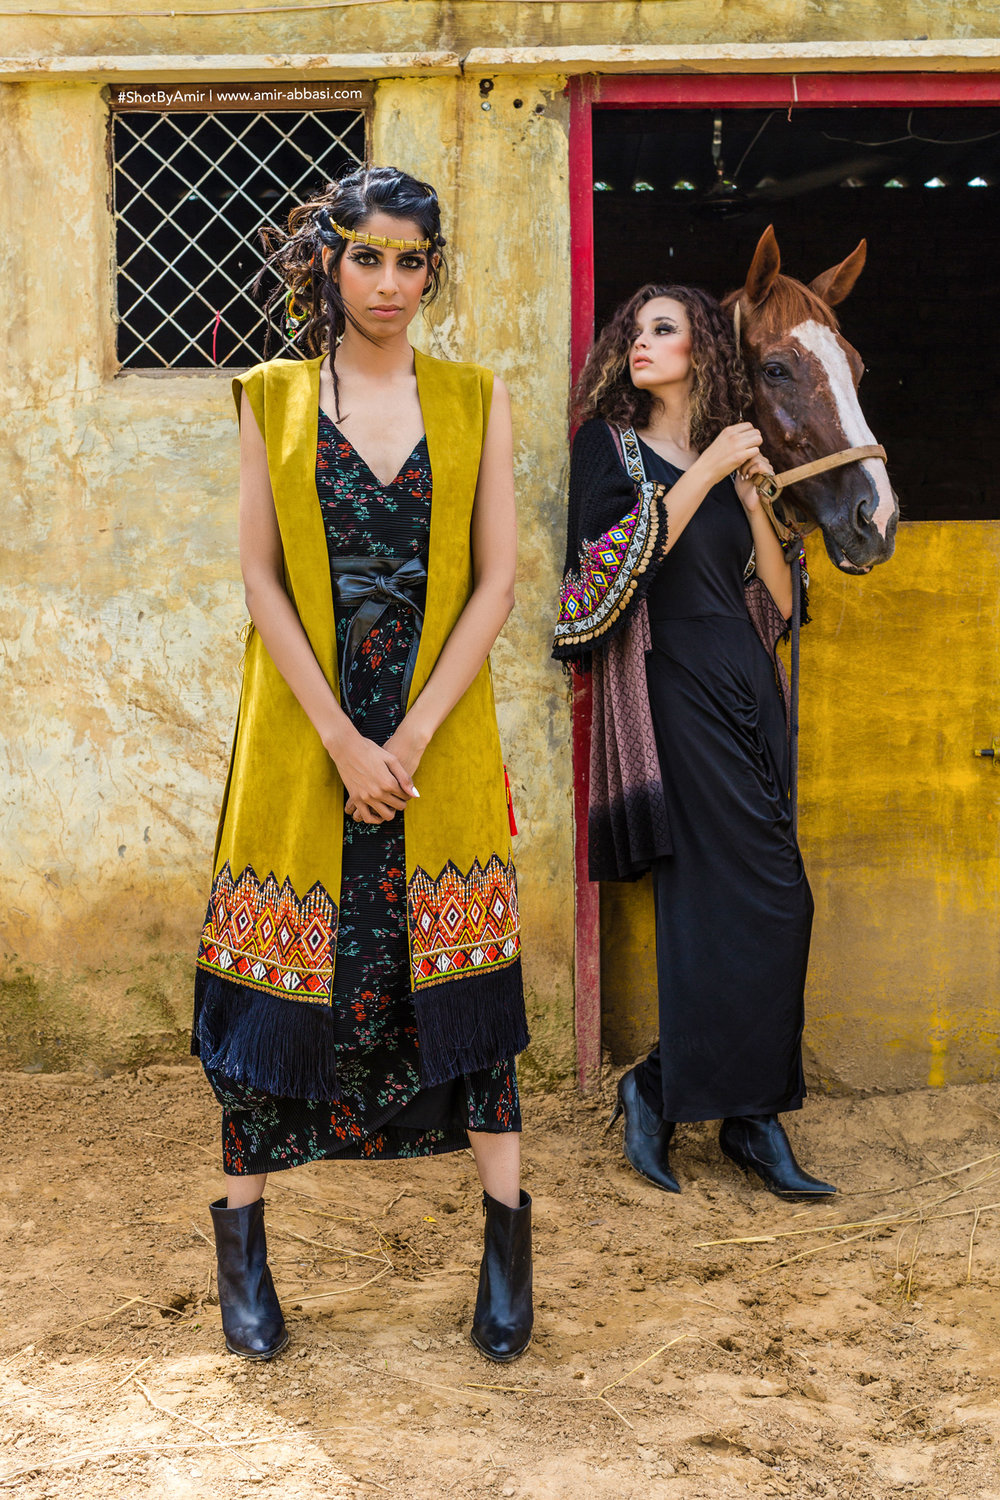 Fashion photoshoot for designer look book in Delhi